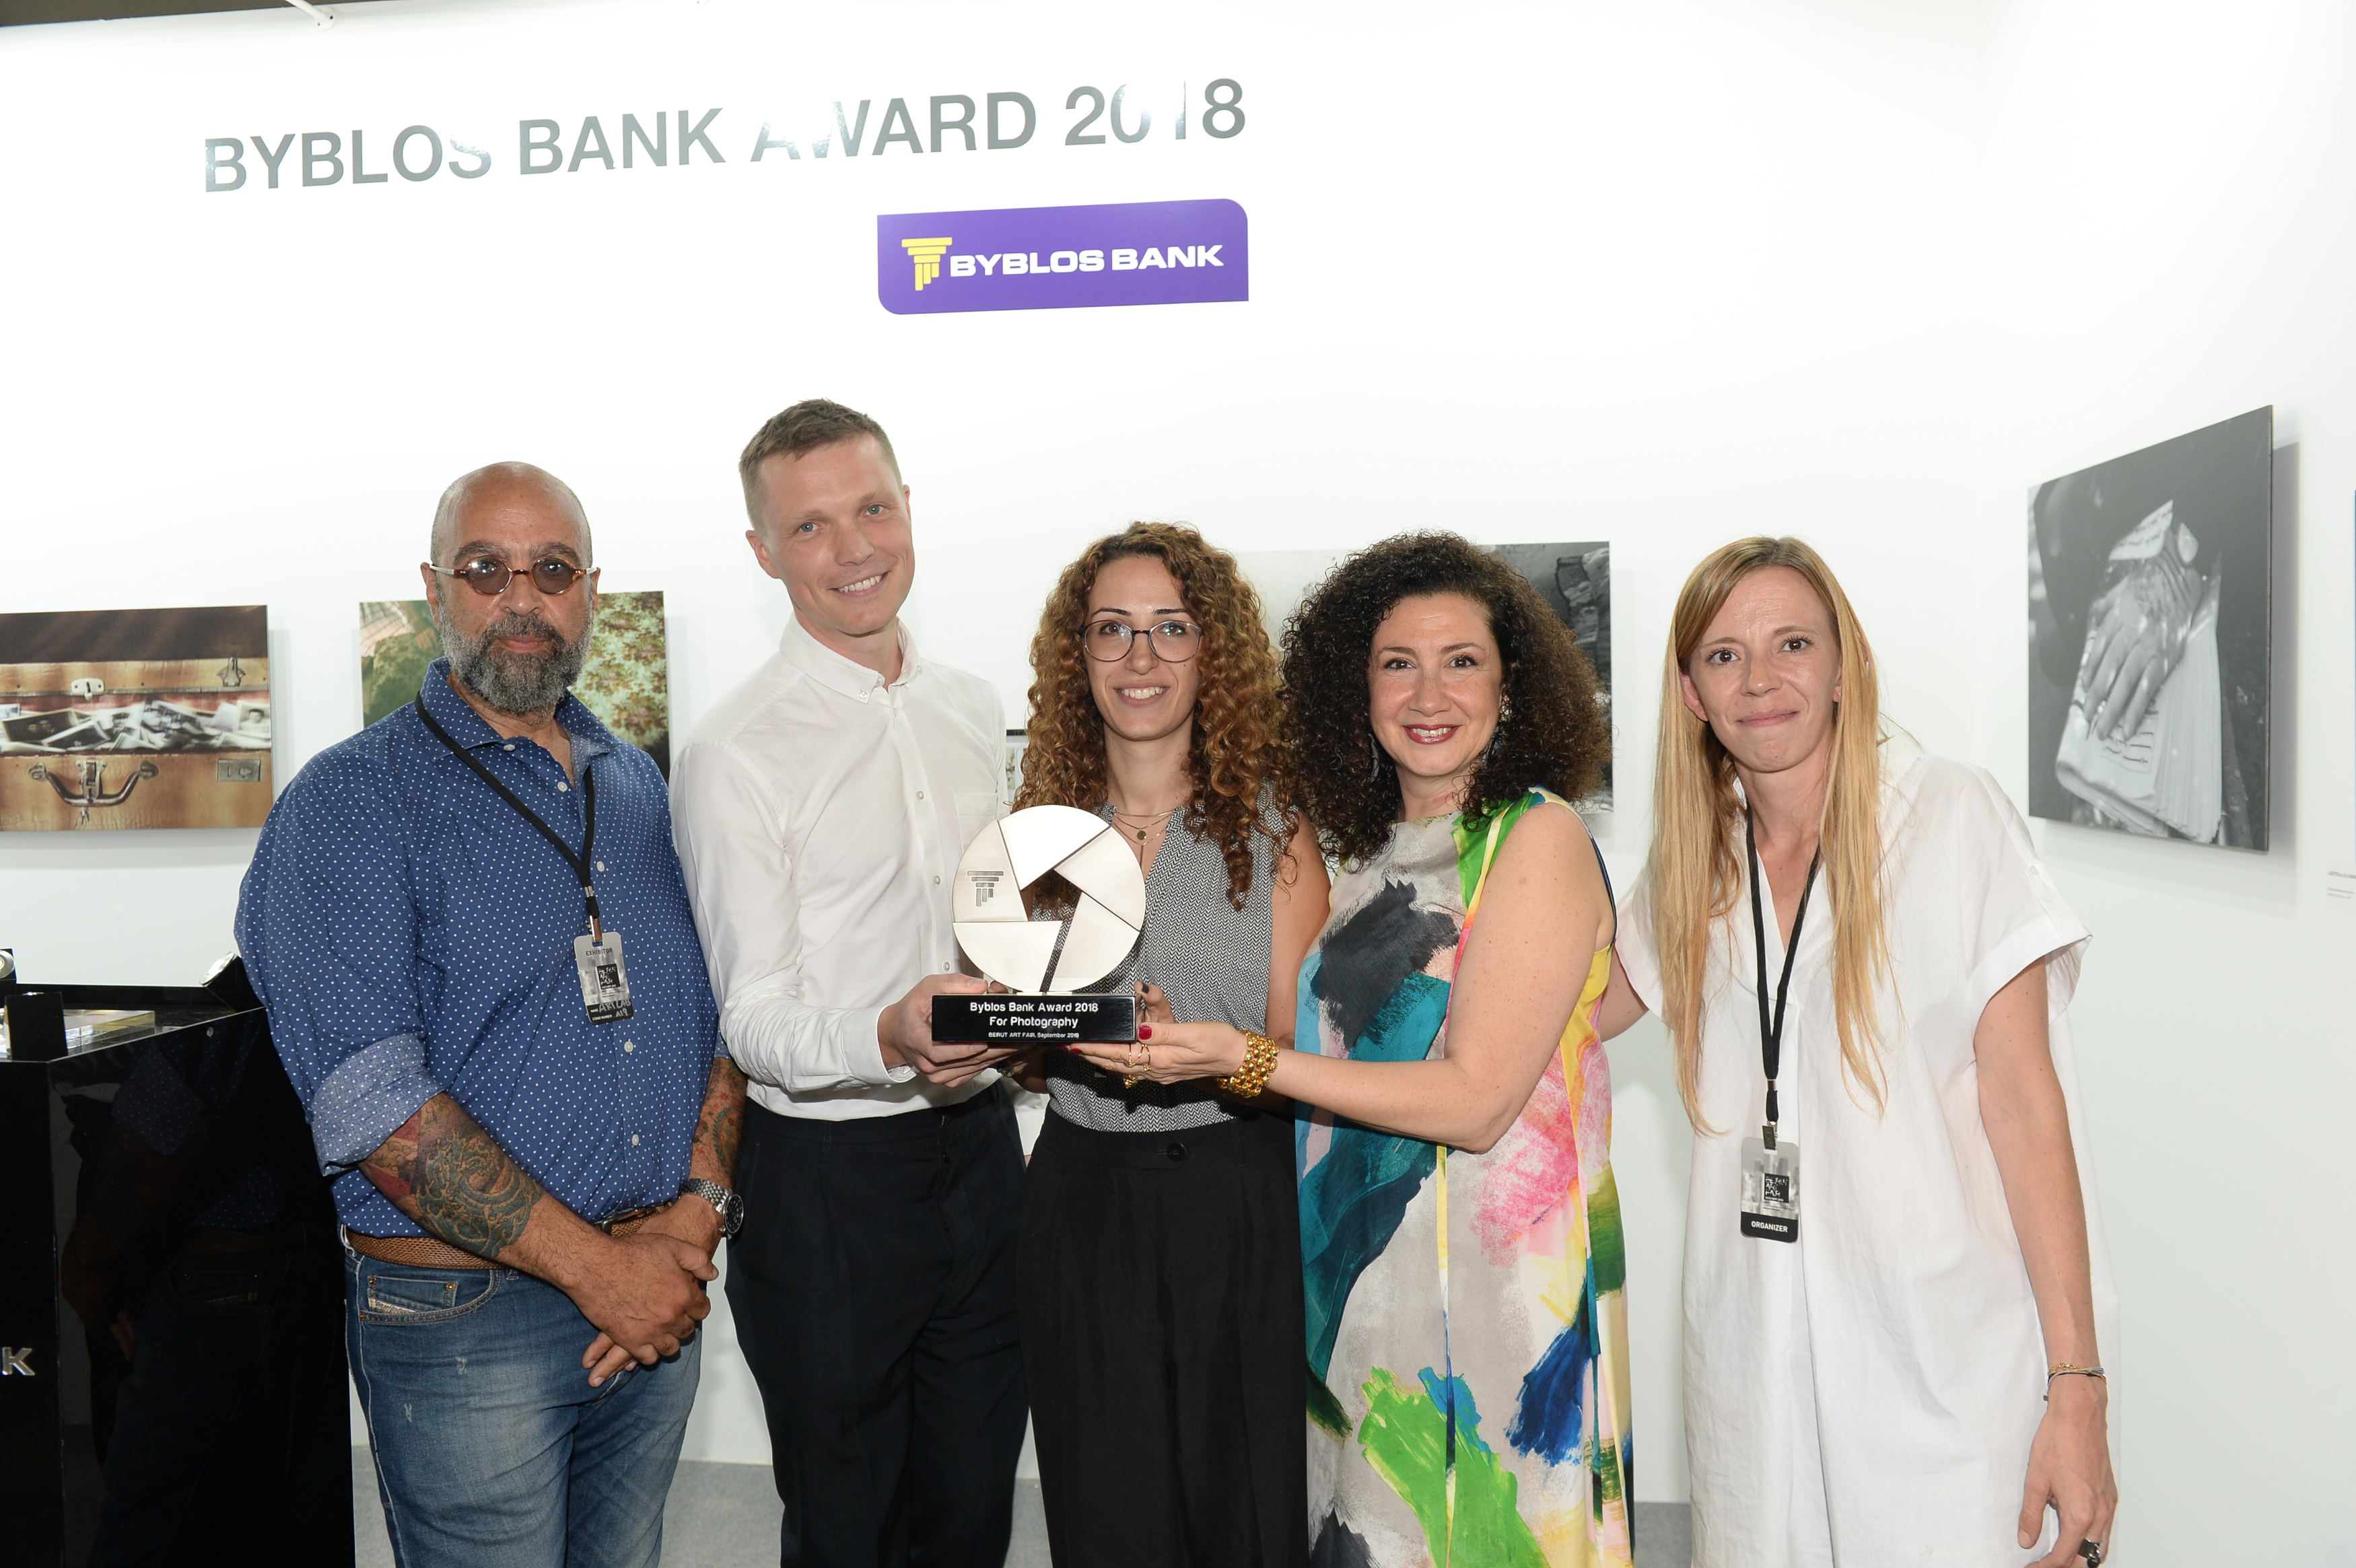 News Room | Betty Ketchedjian wins the 2018 Byblos Bank